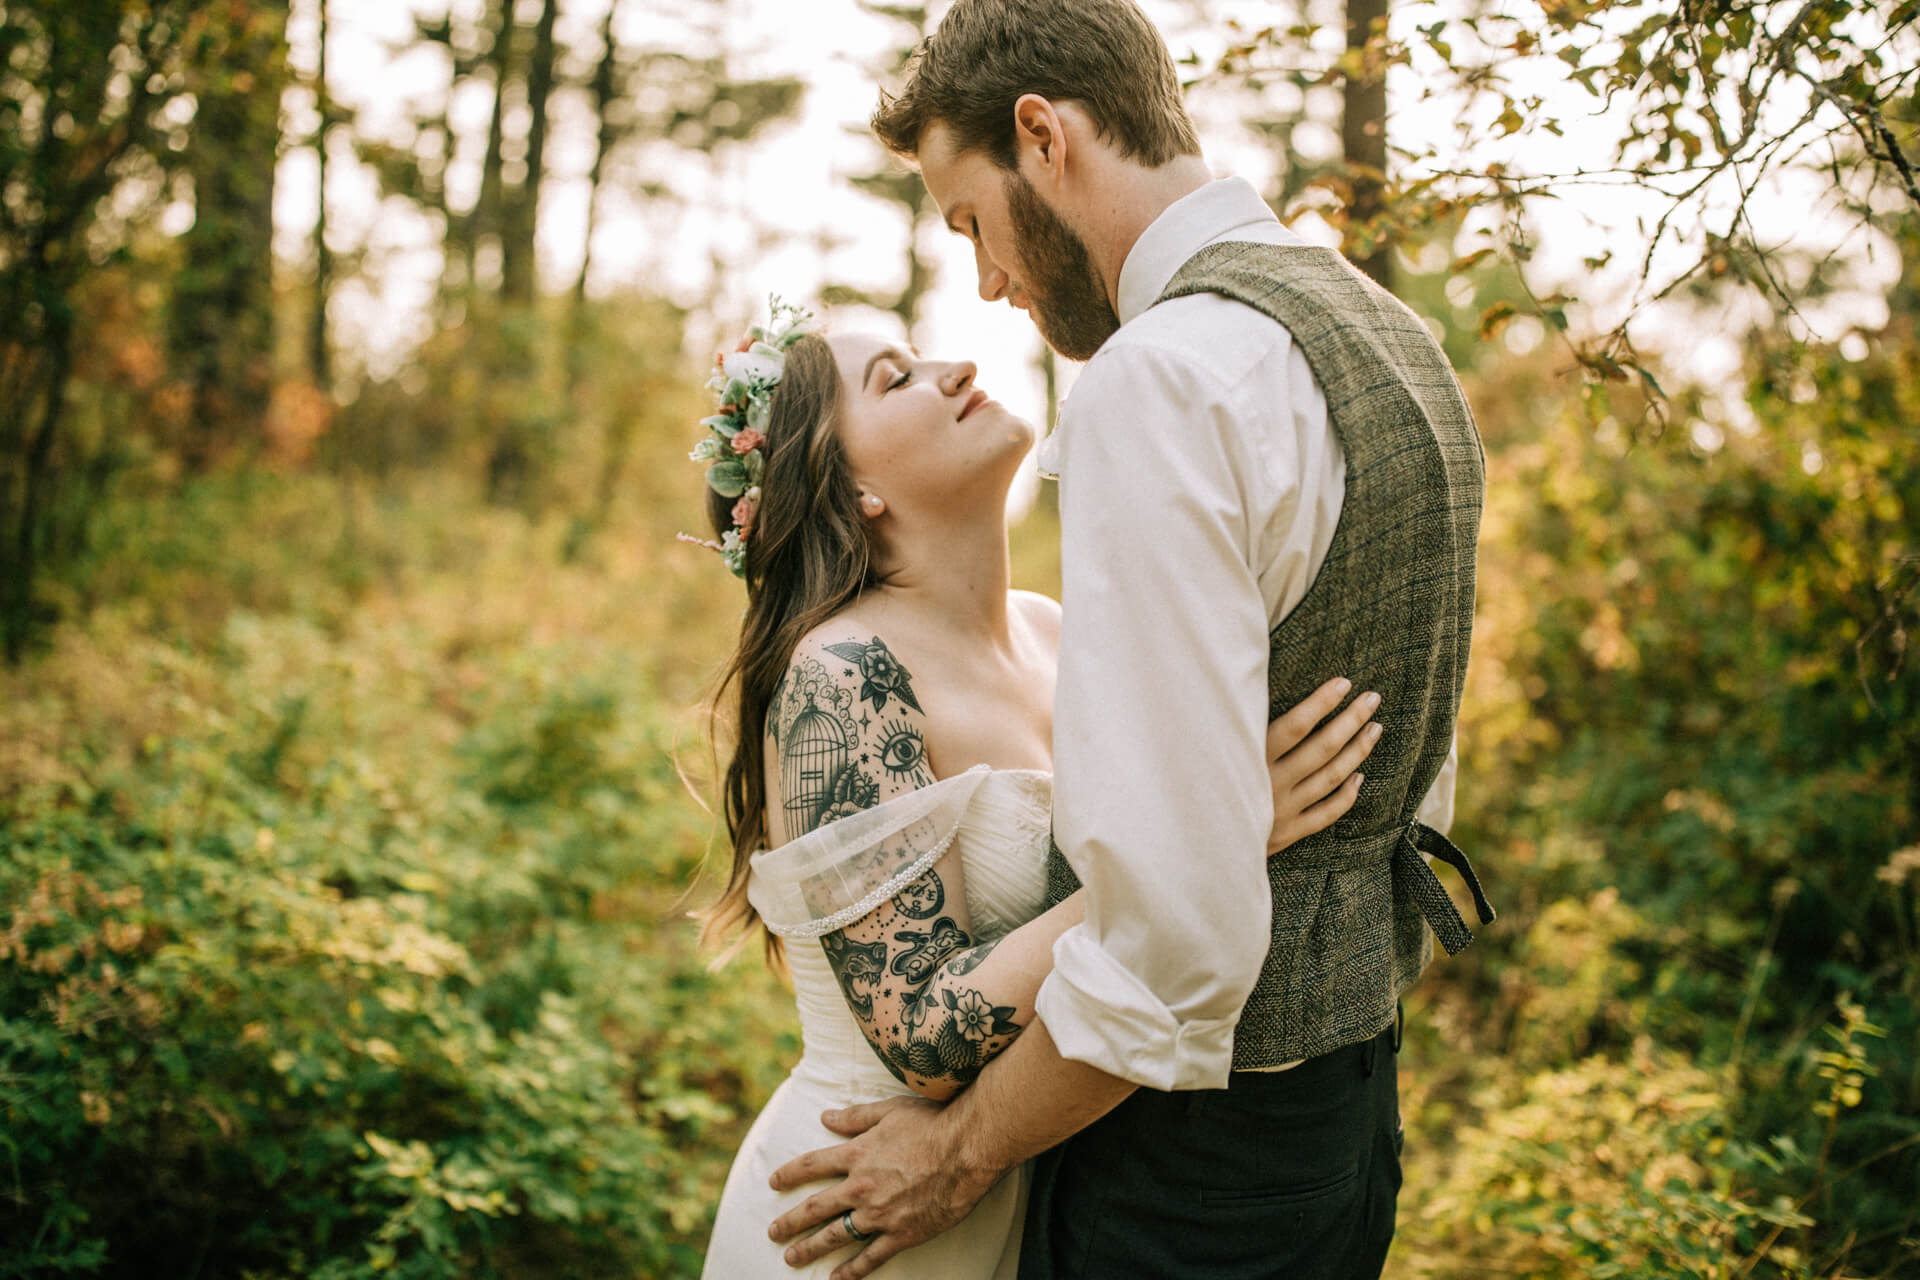 Destination Elopement Photographer | Cluney Photography